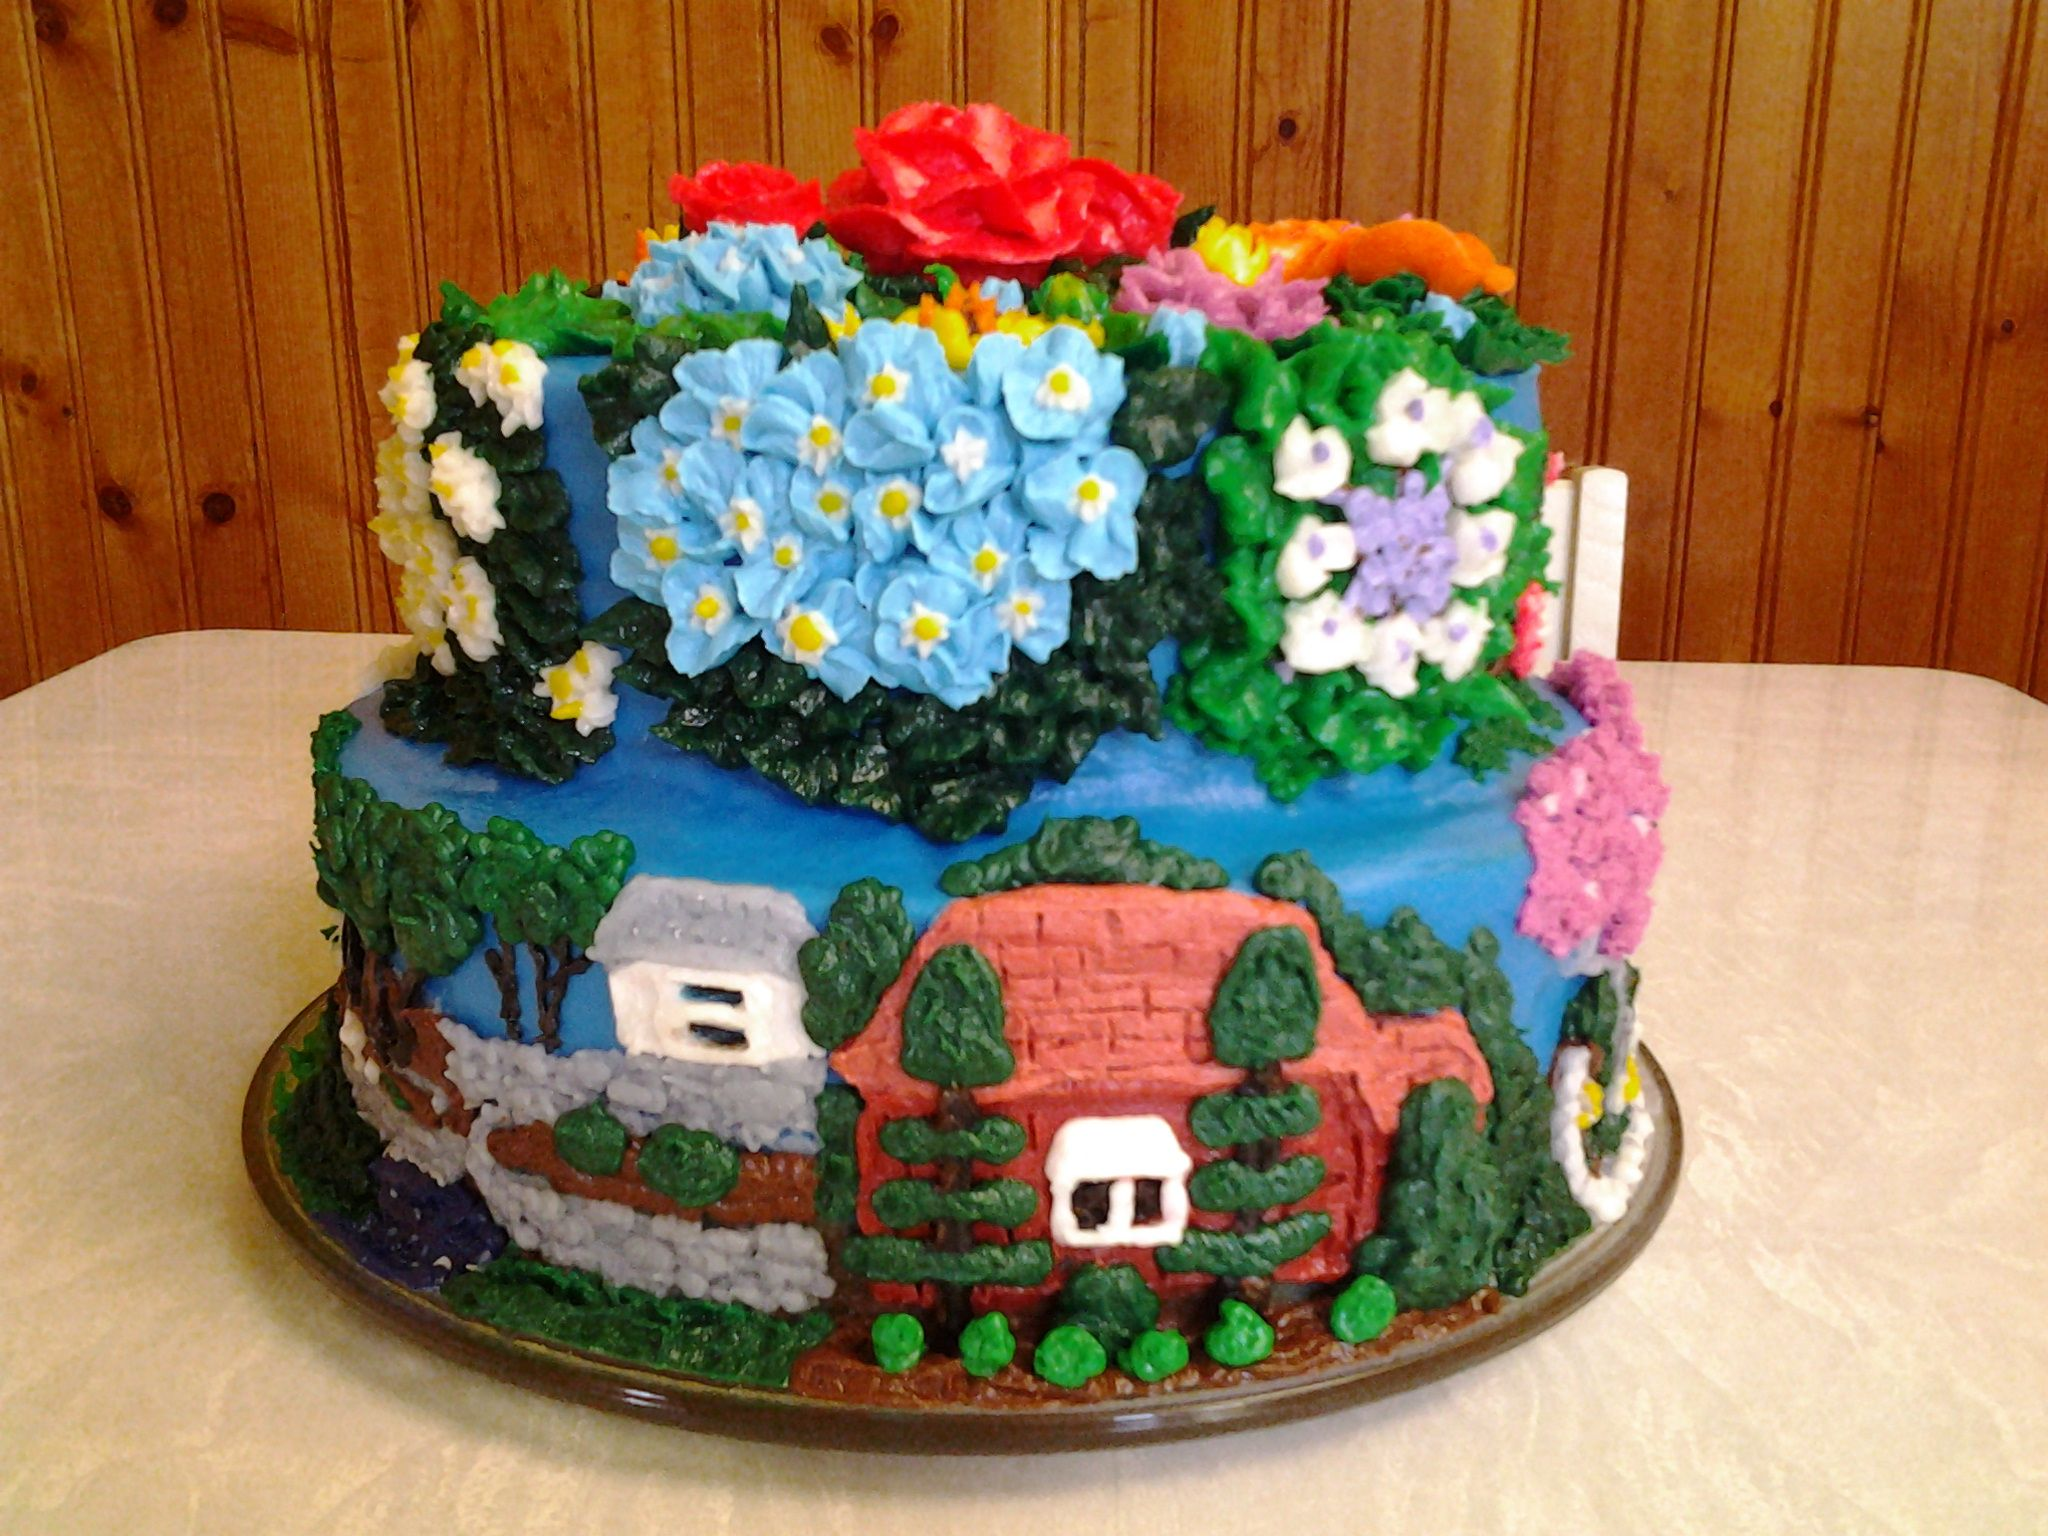 Birthday Cake Images For Diane : Colonial Clippers Ltd Cake by Bobbi Ames. For my cousin ...